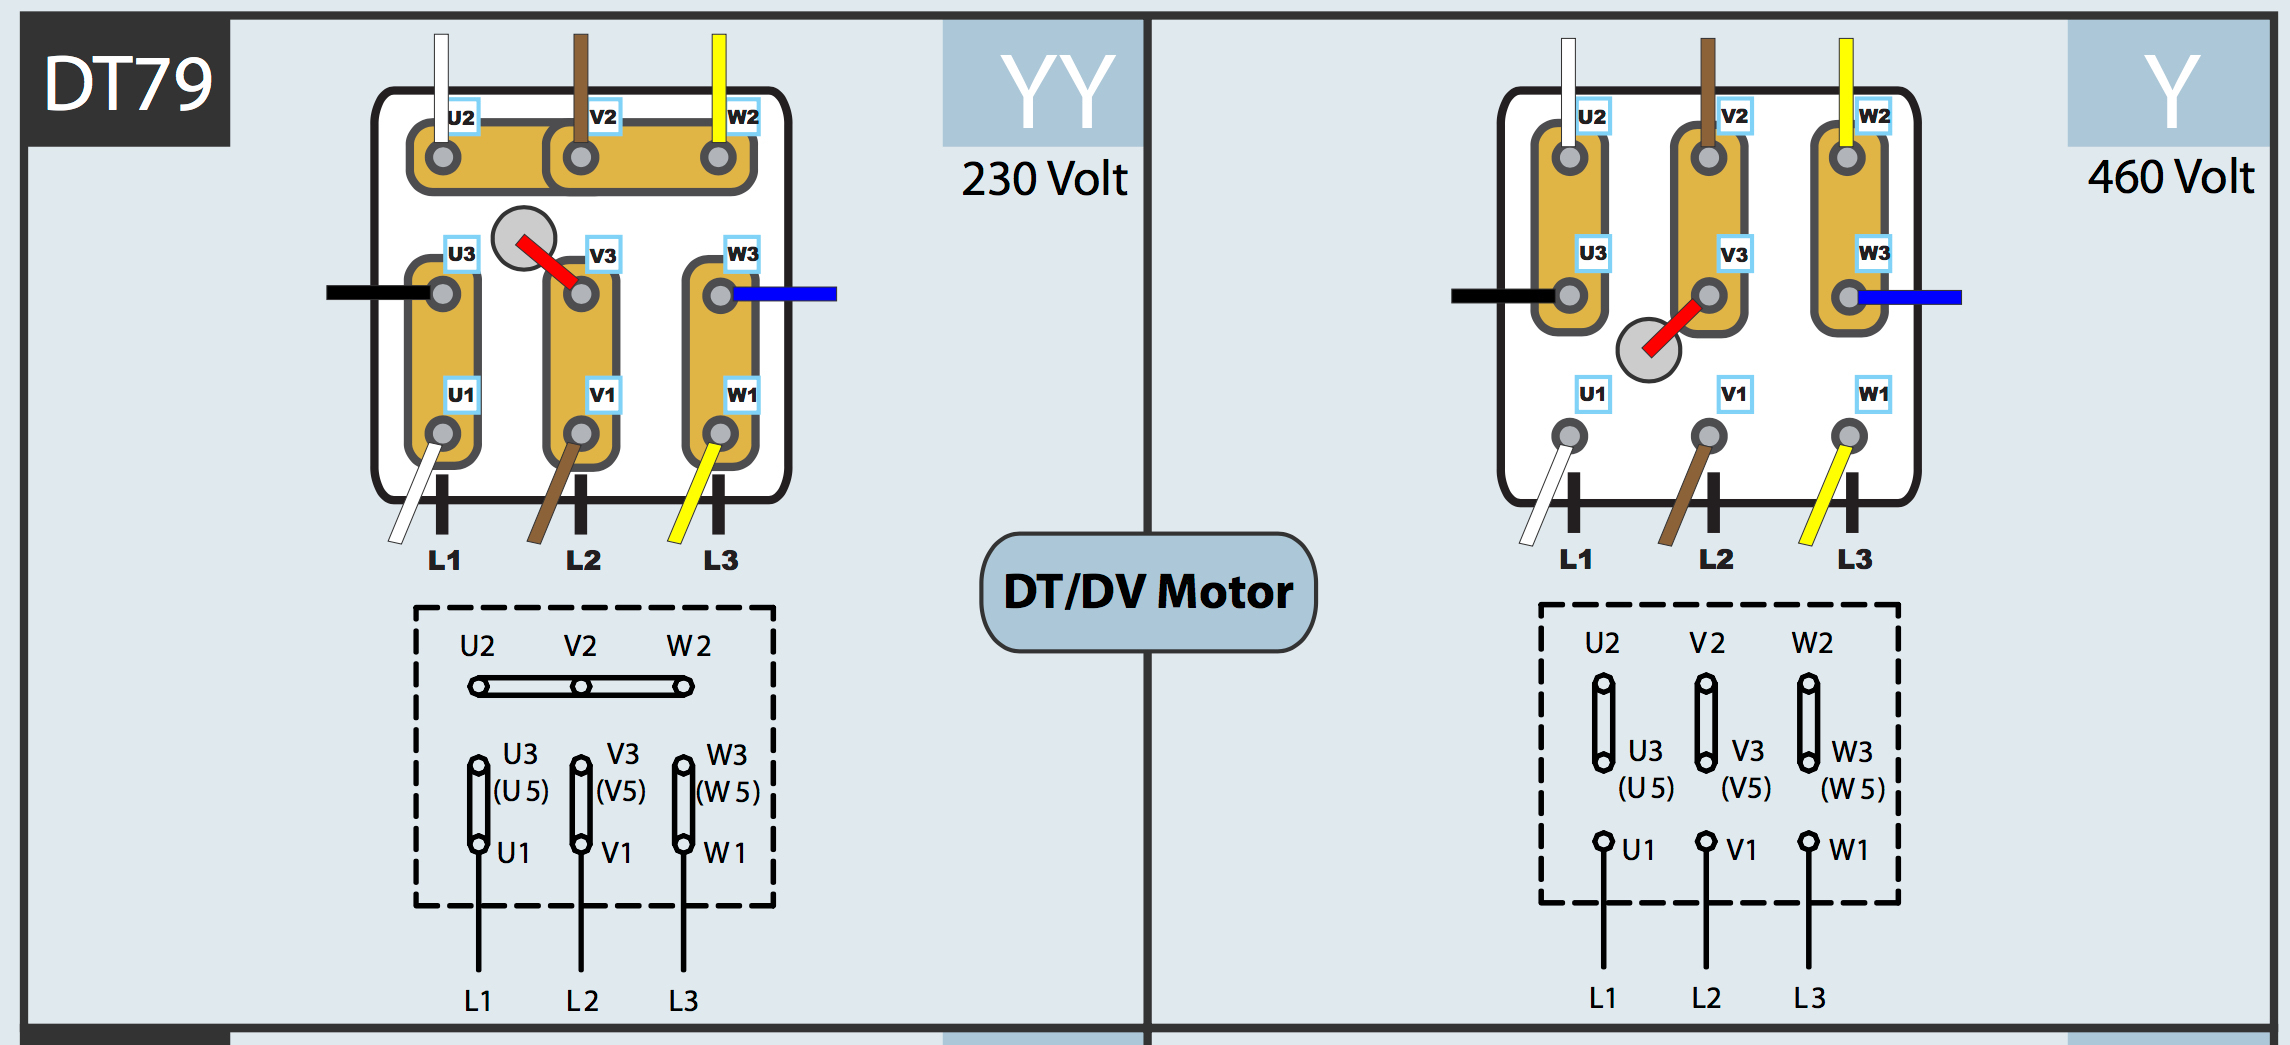 Baldor Motor Heater Wiring Diagram | Wiring Diagram - Motor Wiring Diagram